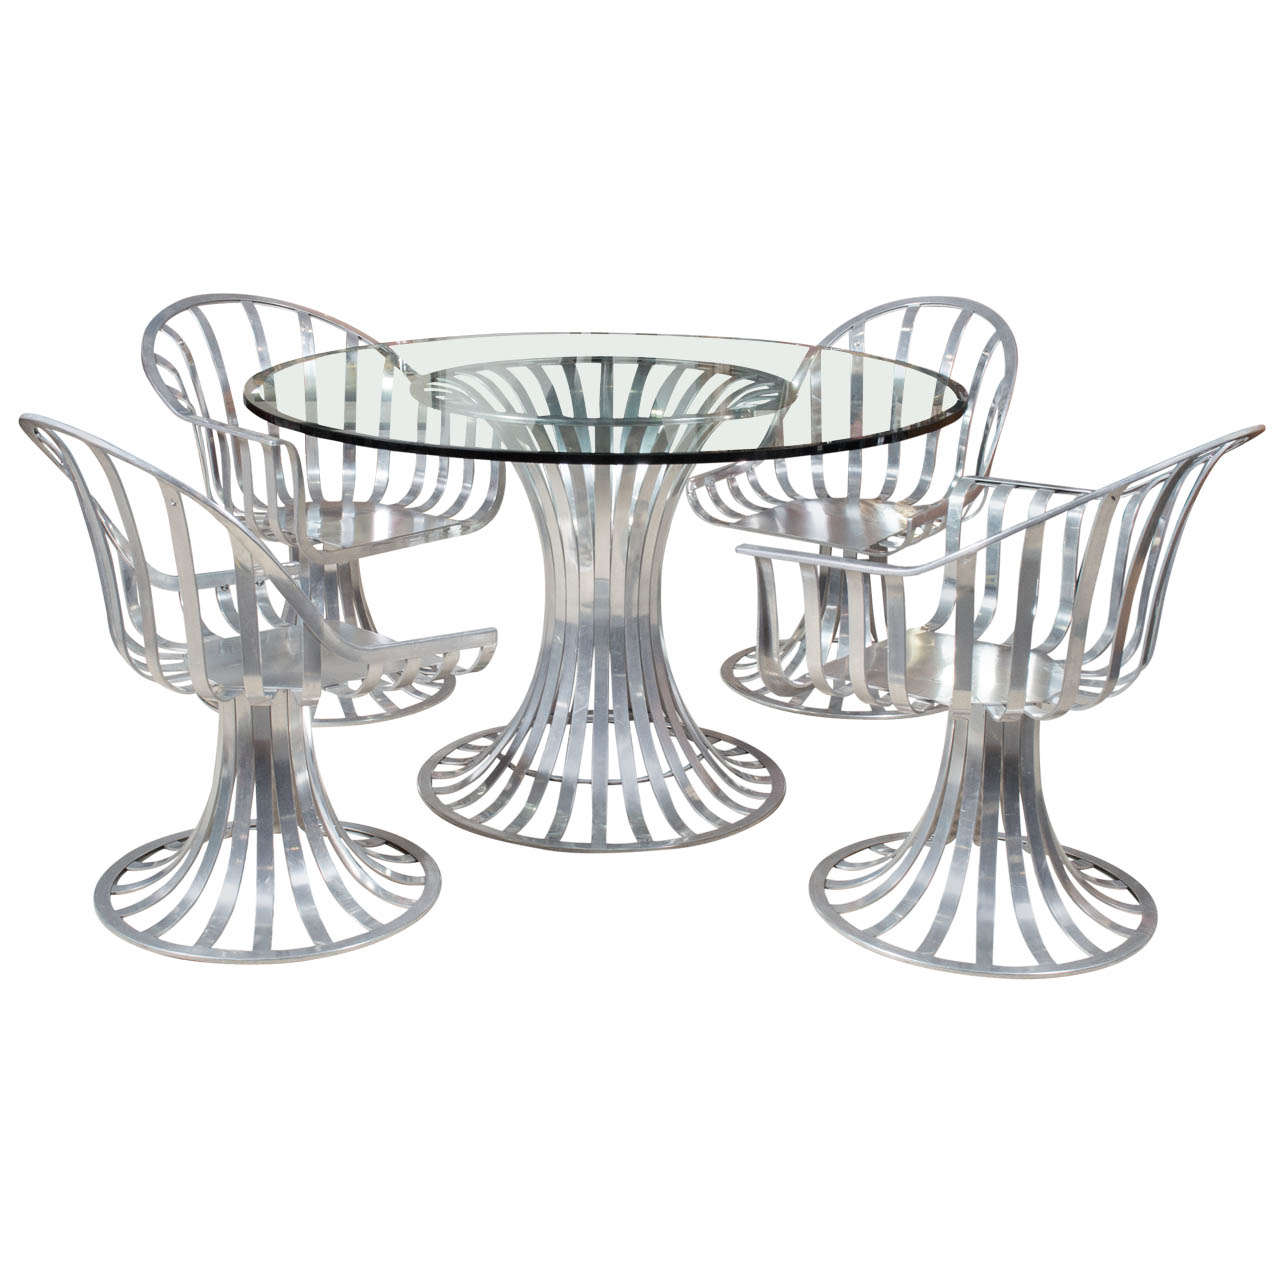 Russell woodard aluminum patio furniture table two chairs for sale